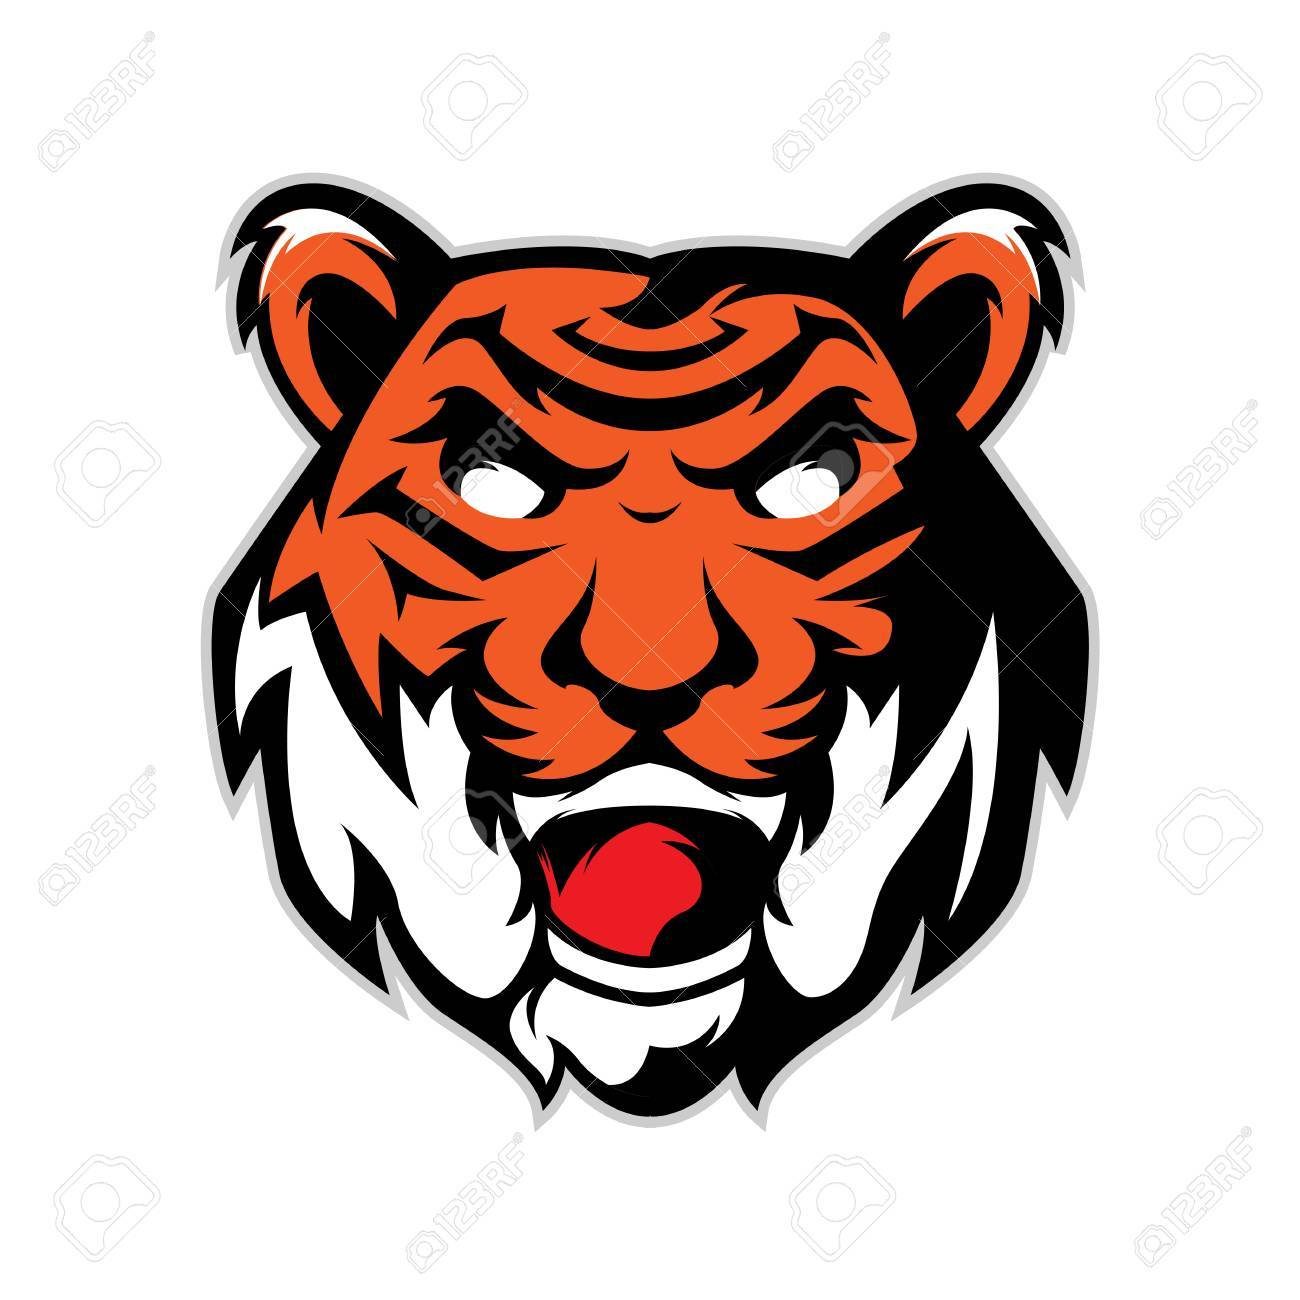 tiger head mascot logo isolated in white background royalty free rh 123rf com  tiger mascot clipart free